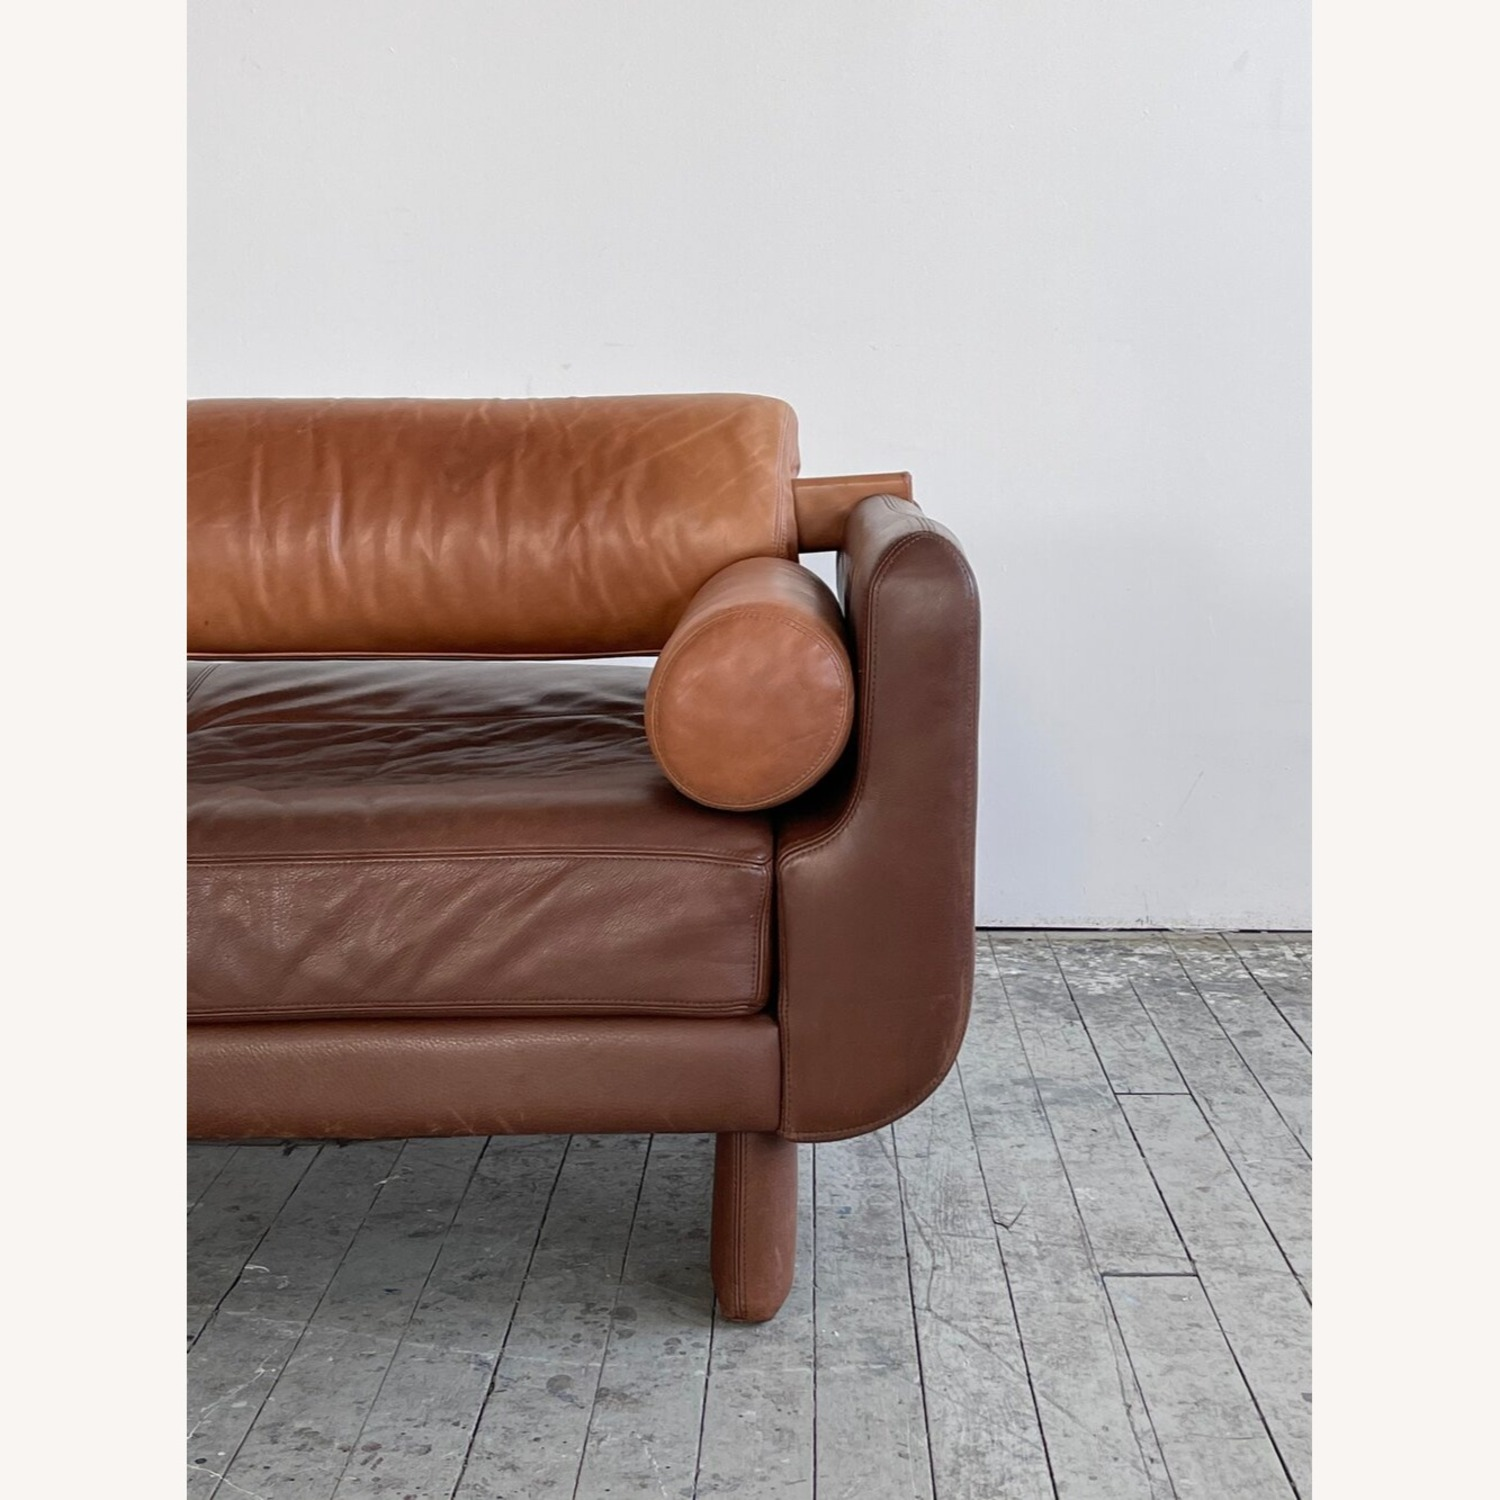 American Leather Daybed Sofa - image-2